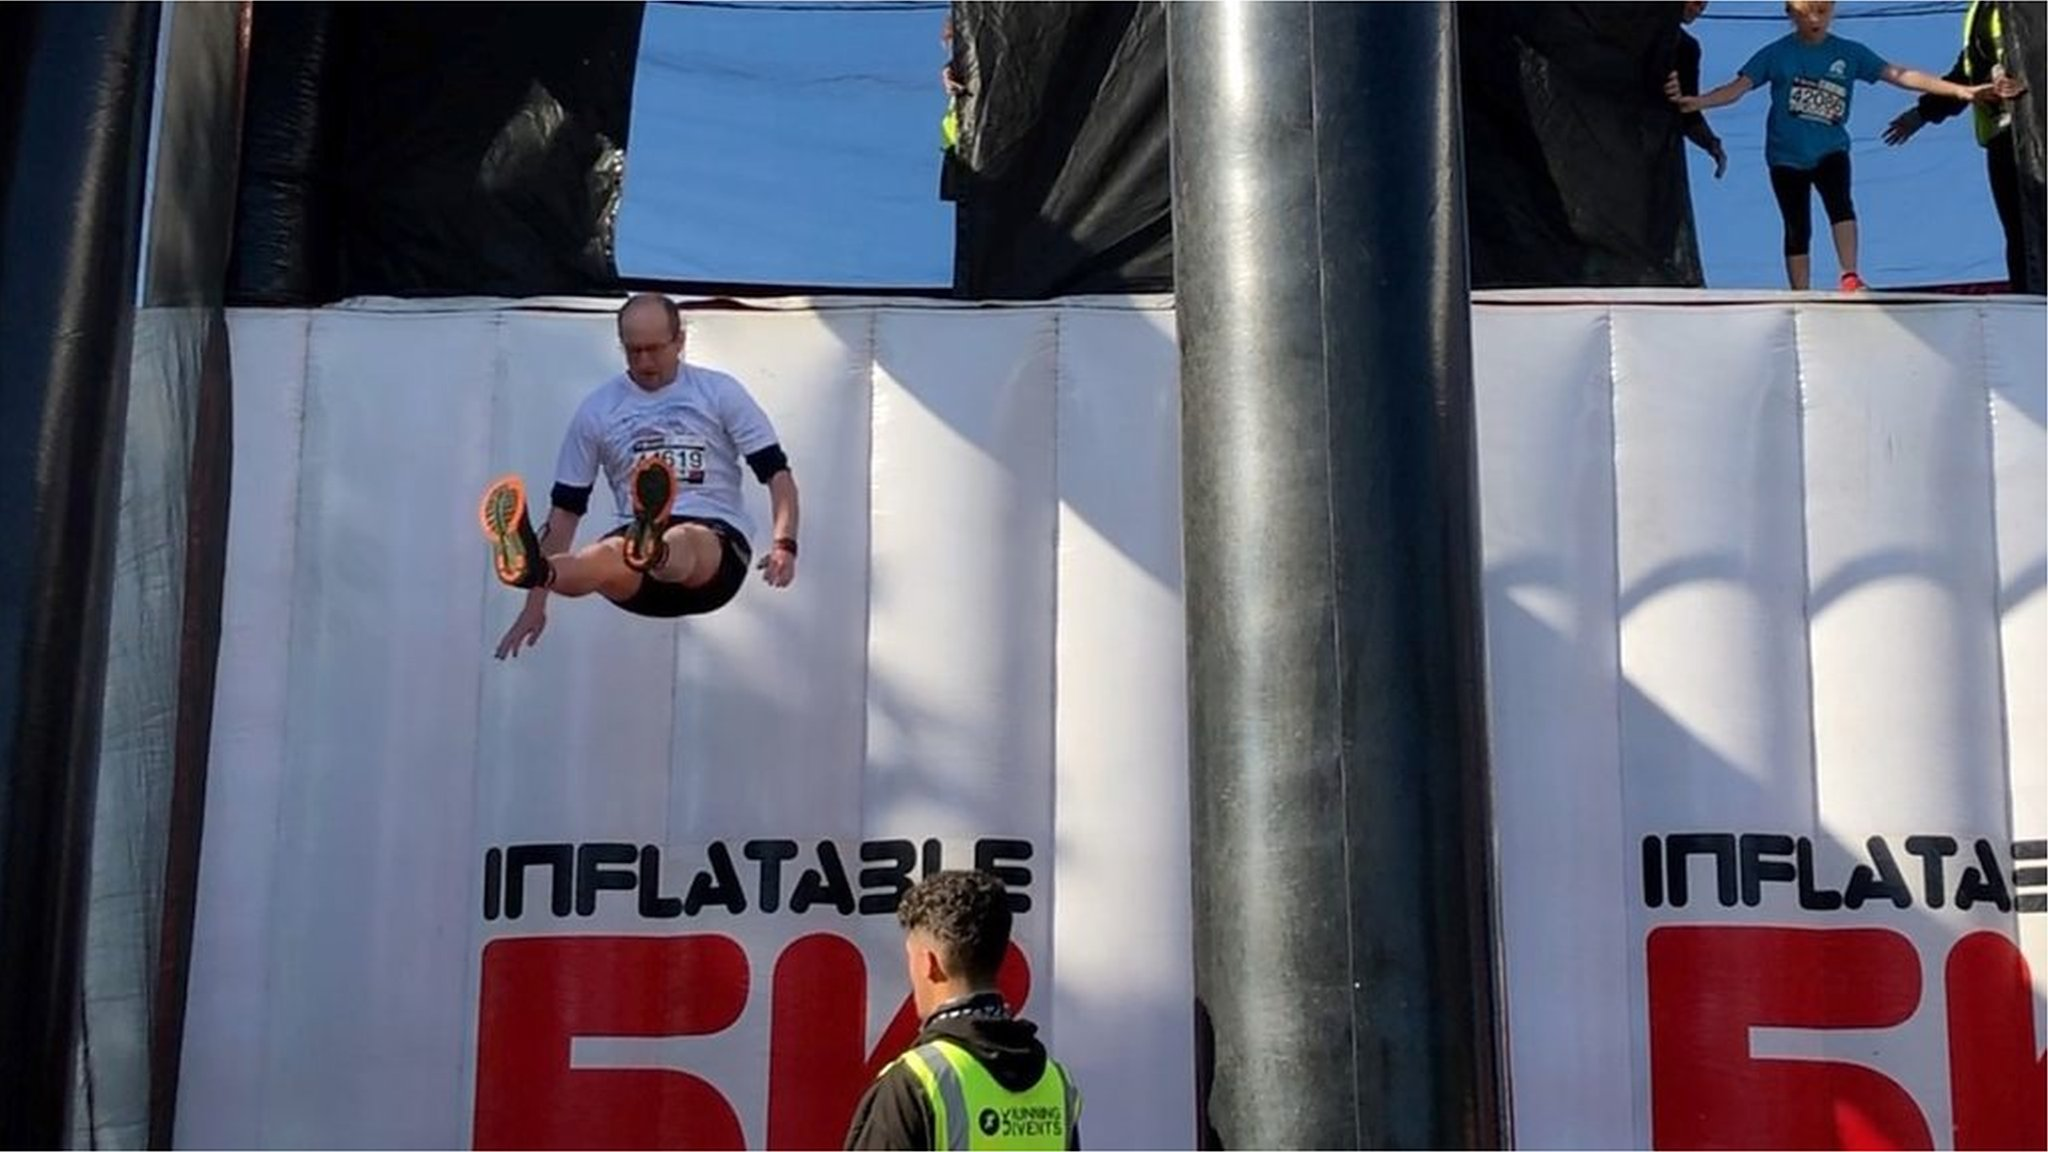 Runners take on 5km inflatable obstacle course